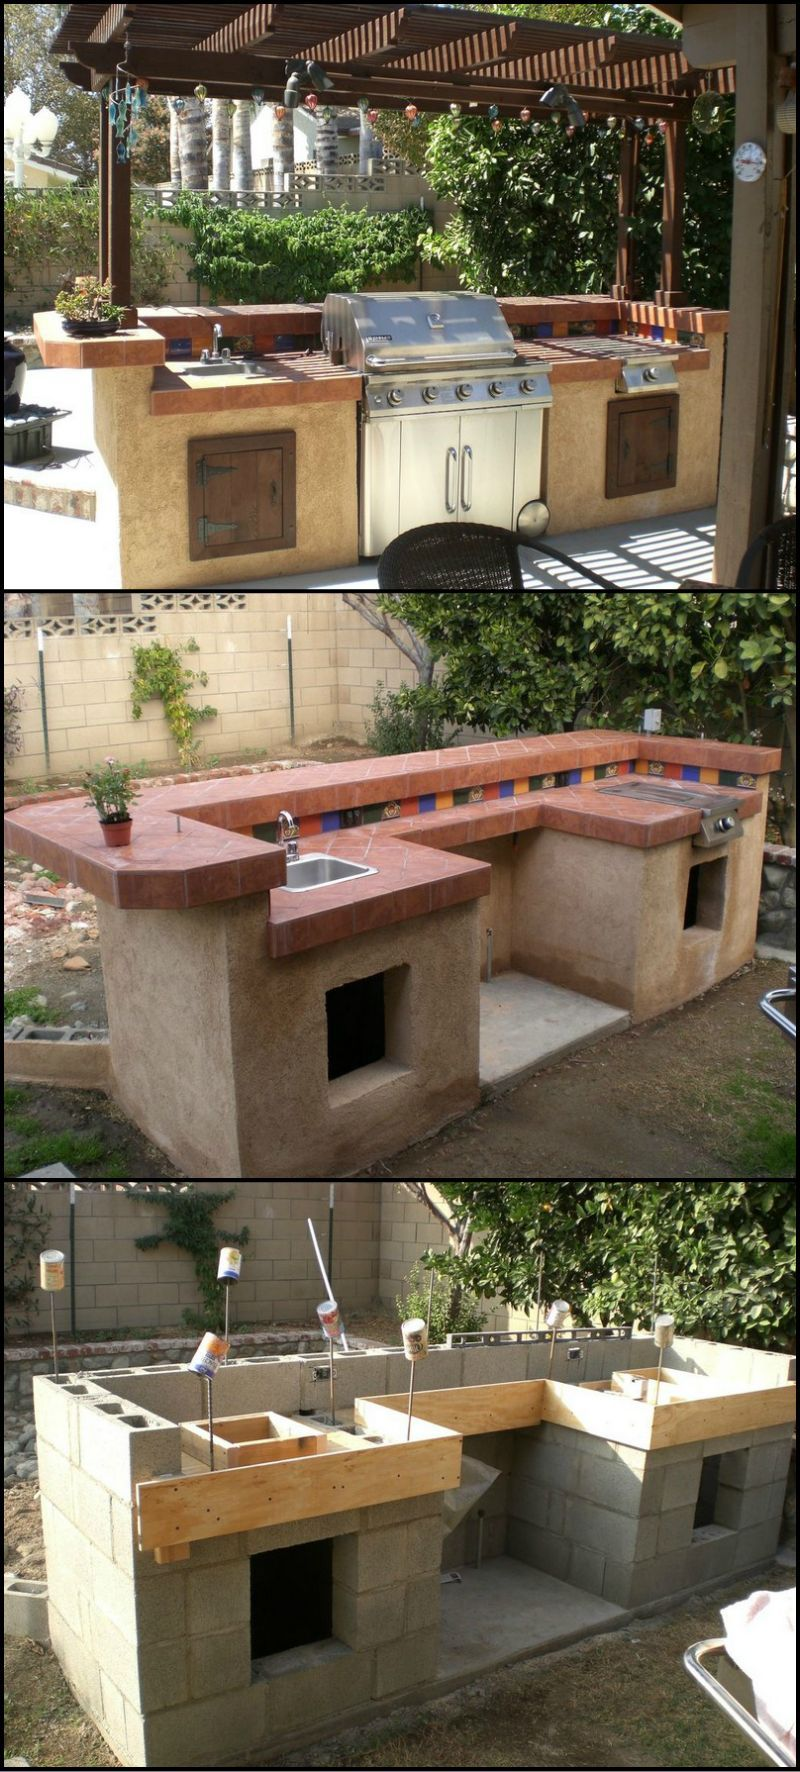 How To Build An Outdoor Kitchen  http://theownerbuildernetwork.co/jnp6  Thinking…